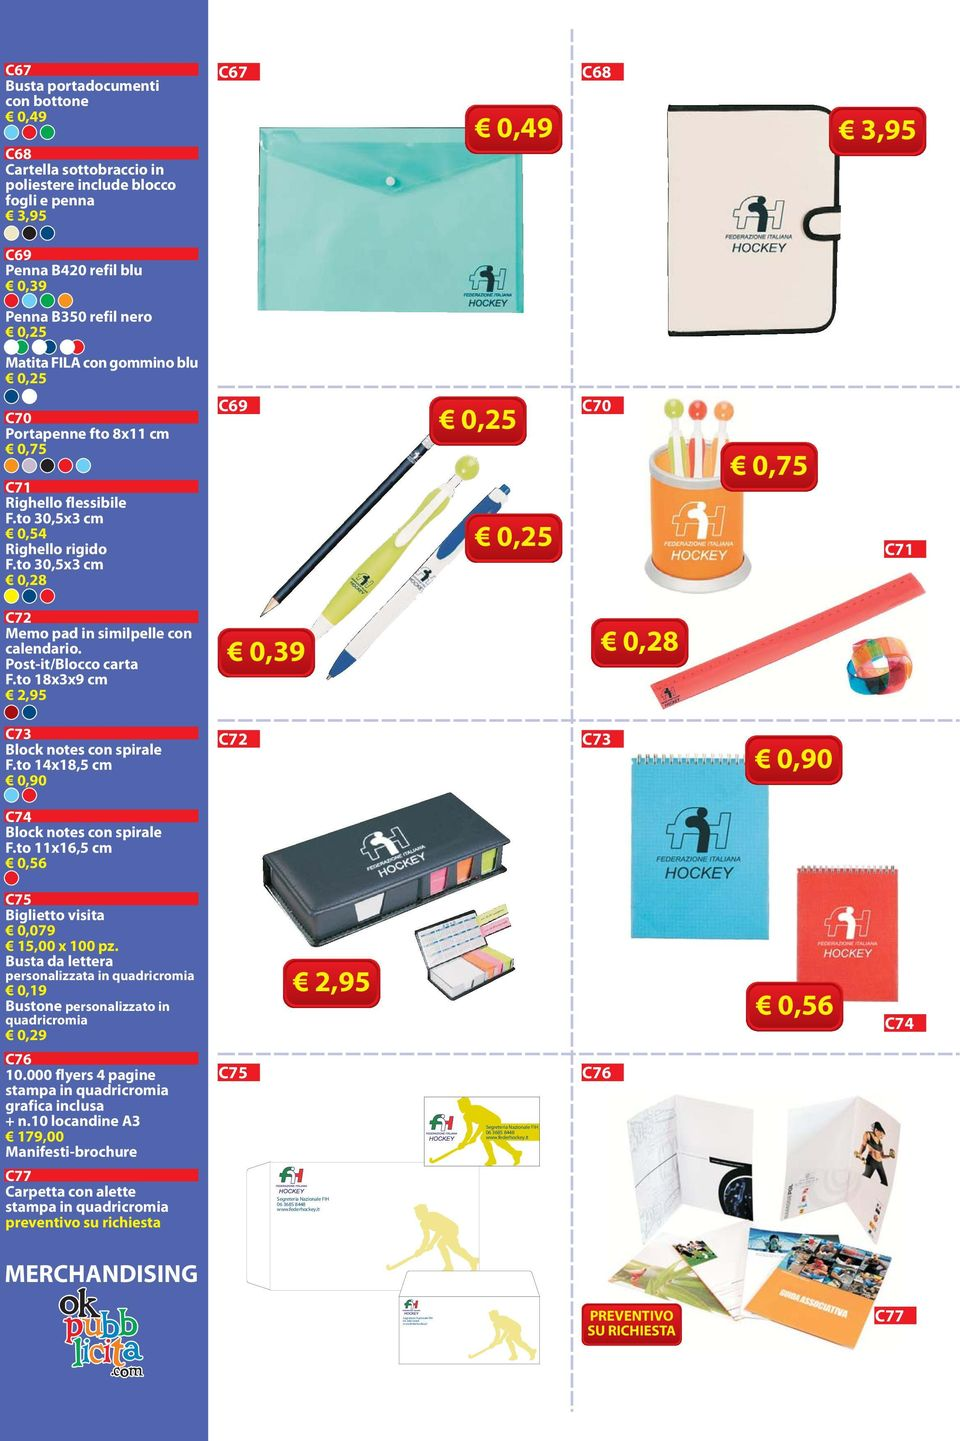 to 30,5x3 cm 0,28 C69 0,25 0,25 C70 0,75 C71 C72 Memo pad in similpelle con calendario. Post-it/Blocco carta F.to 18x3x9 cm 2,95 0,39 0,28 C73 Block notes con spirale F.